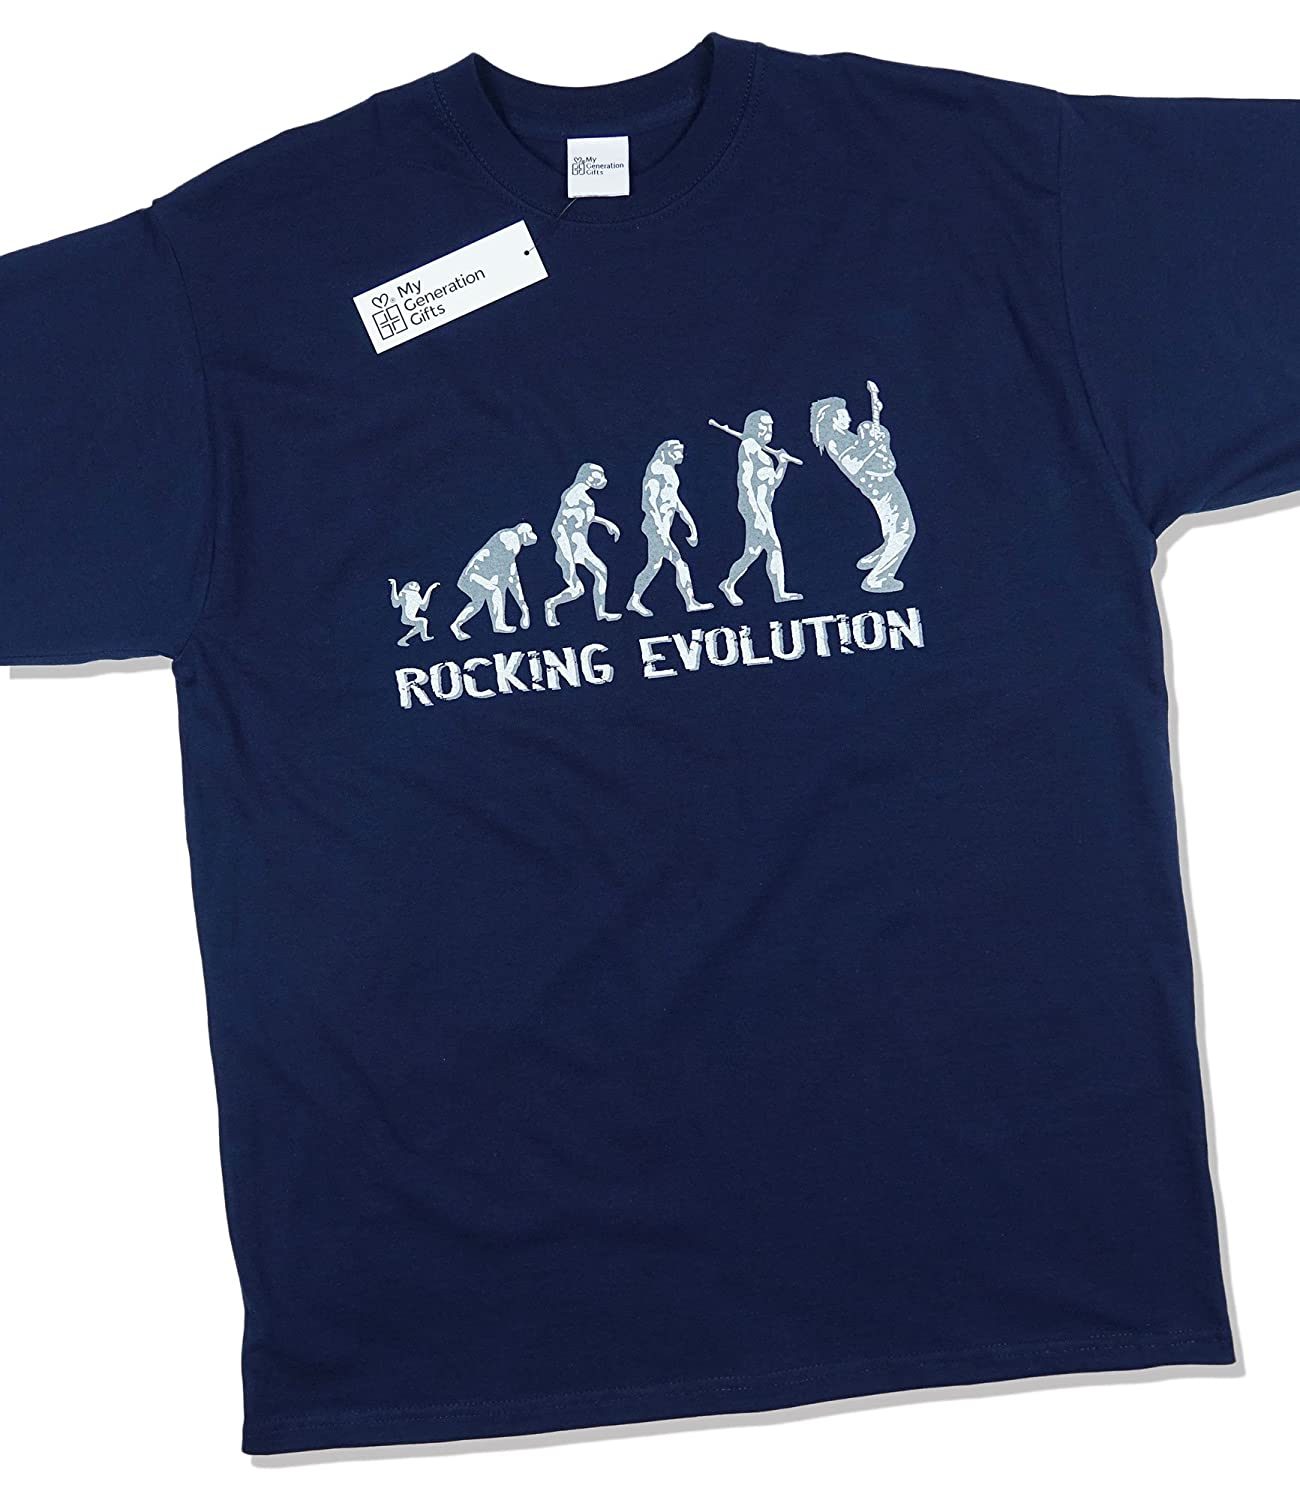 Rocking Guitar Player Evolution - Funny Music Guitar Band Gift Mens T-Shirt:  Amazon.co.uk: Clothing